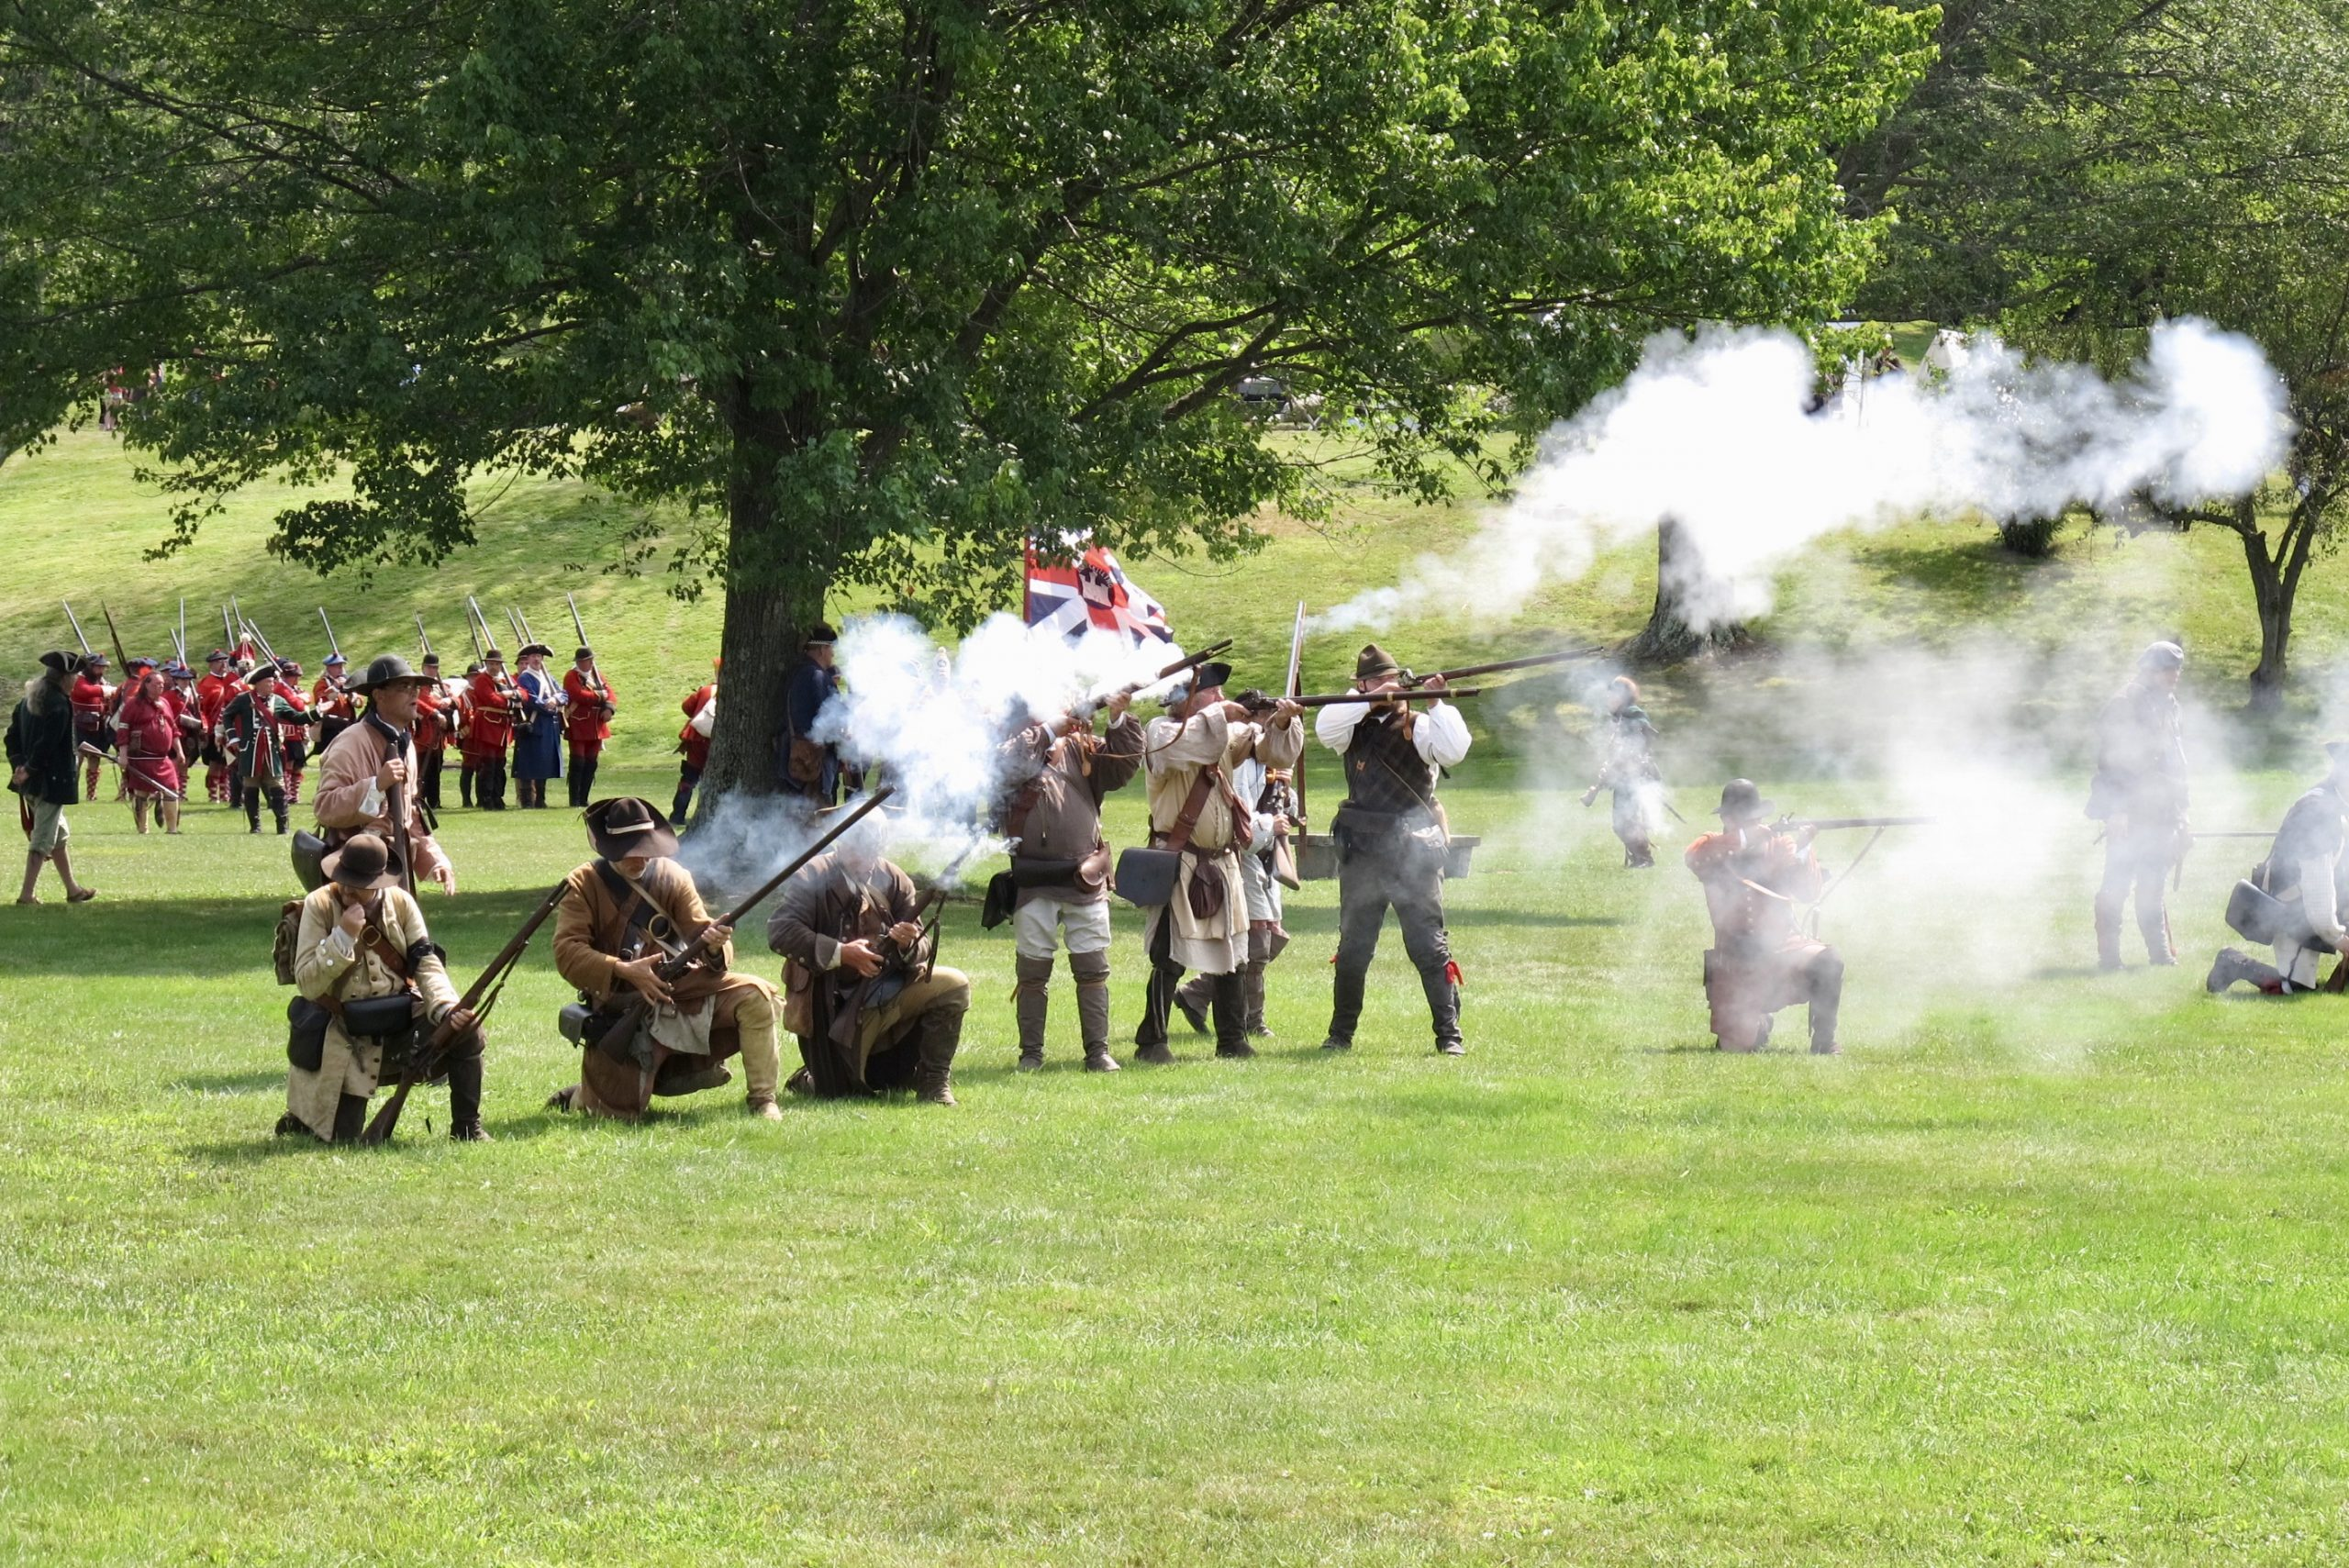 18th Century Colonial troops fire muskets at reenactment